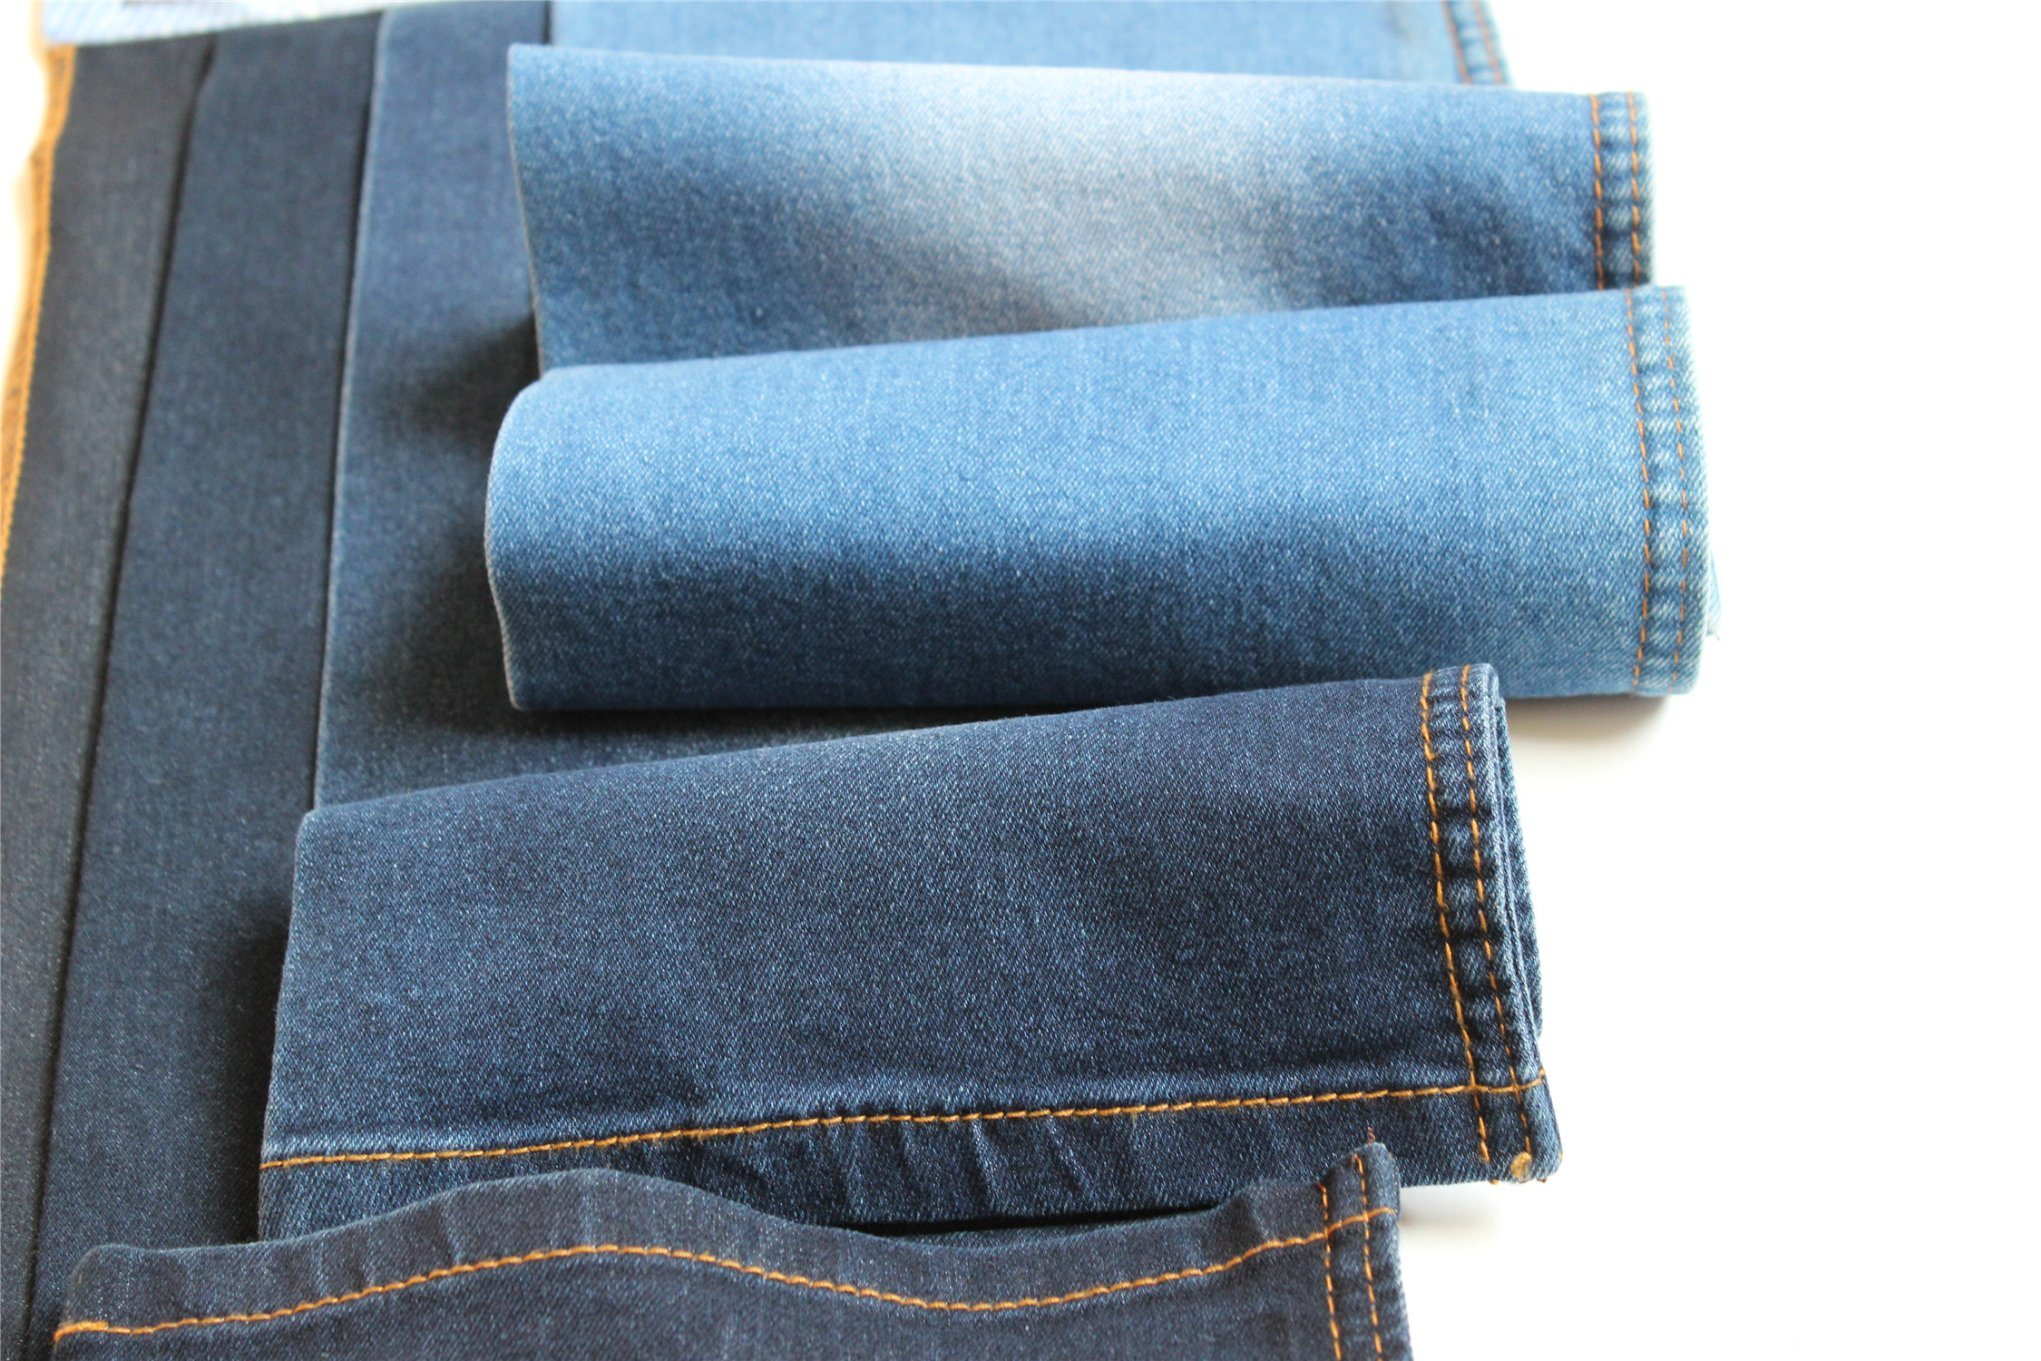 Cotton Polyester Spandex Denim For Jeans and Blouse